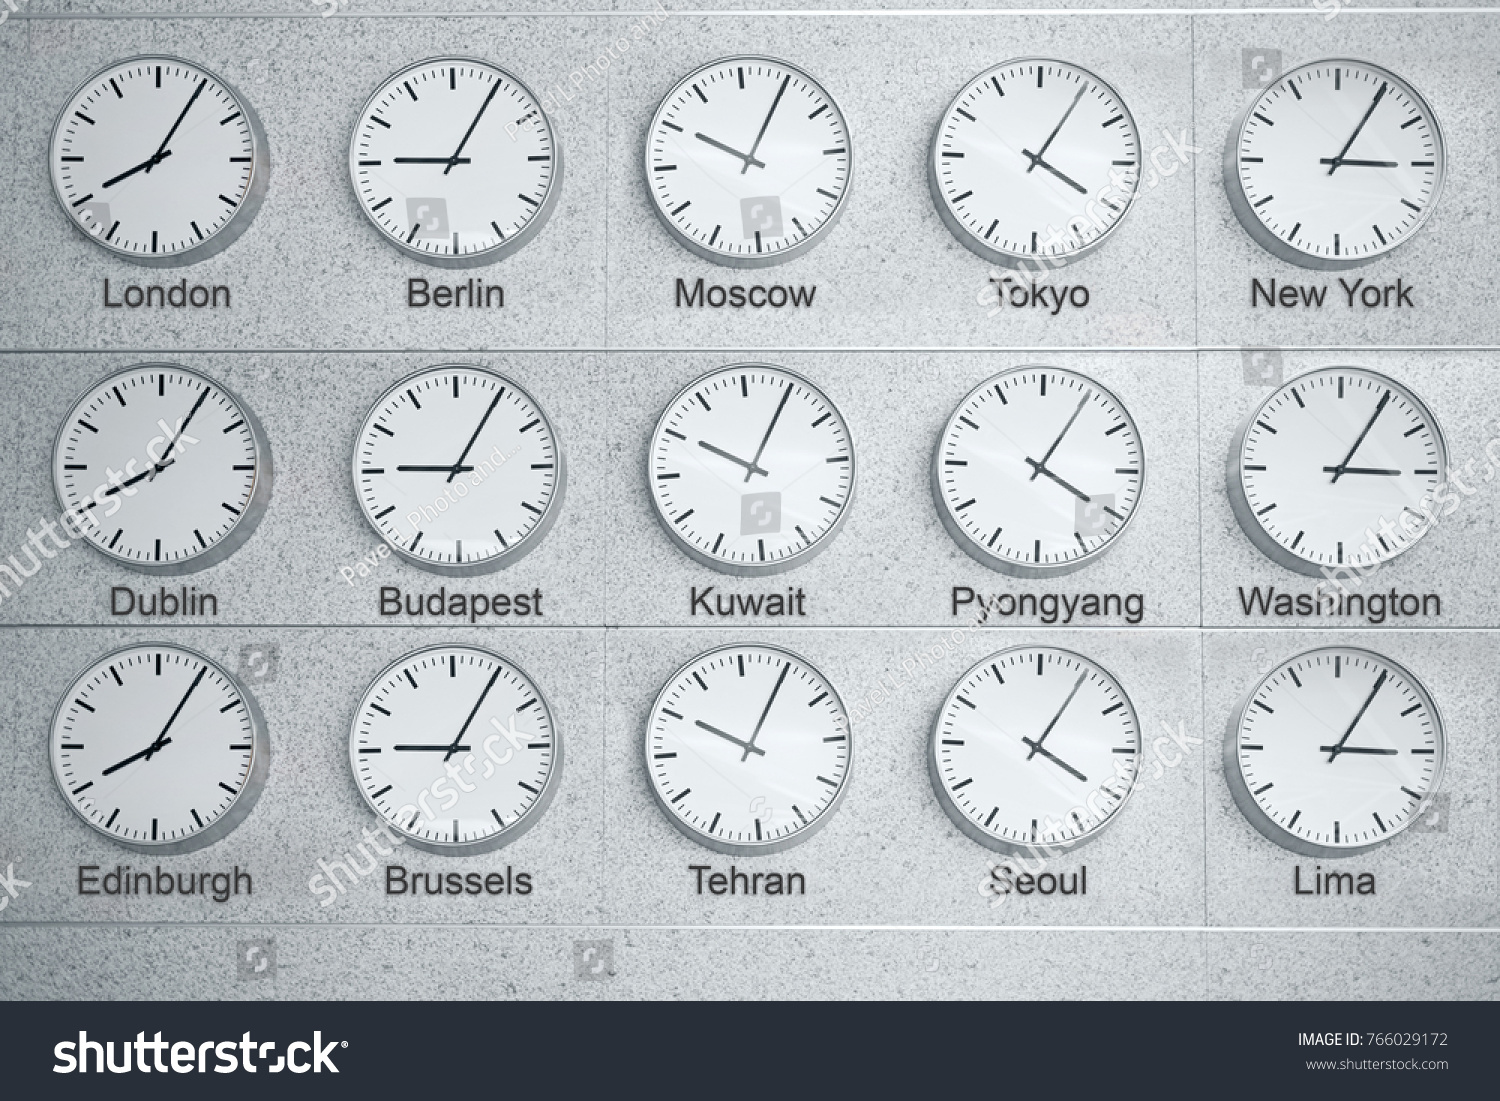 15 Wall Clocks Showing Time Different Stock Photo Edit Now